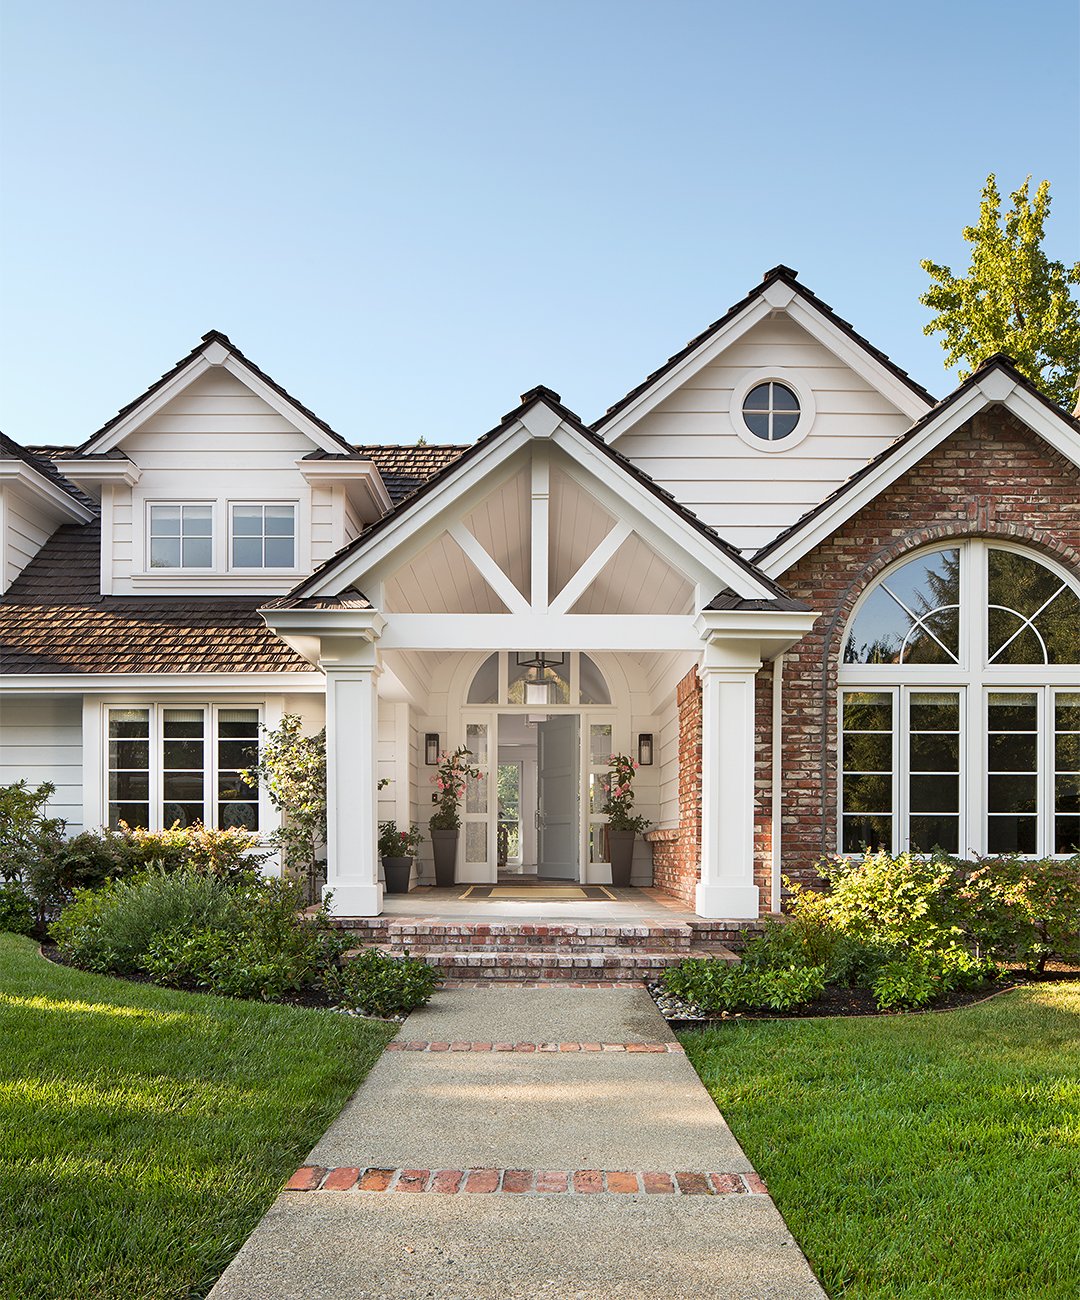 Ranch Home Updates Before and After: Home Exteriors